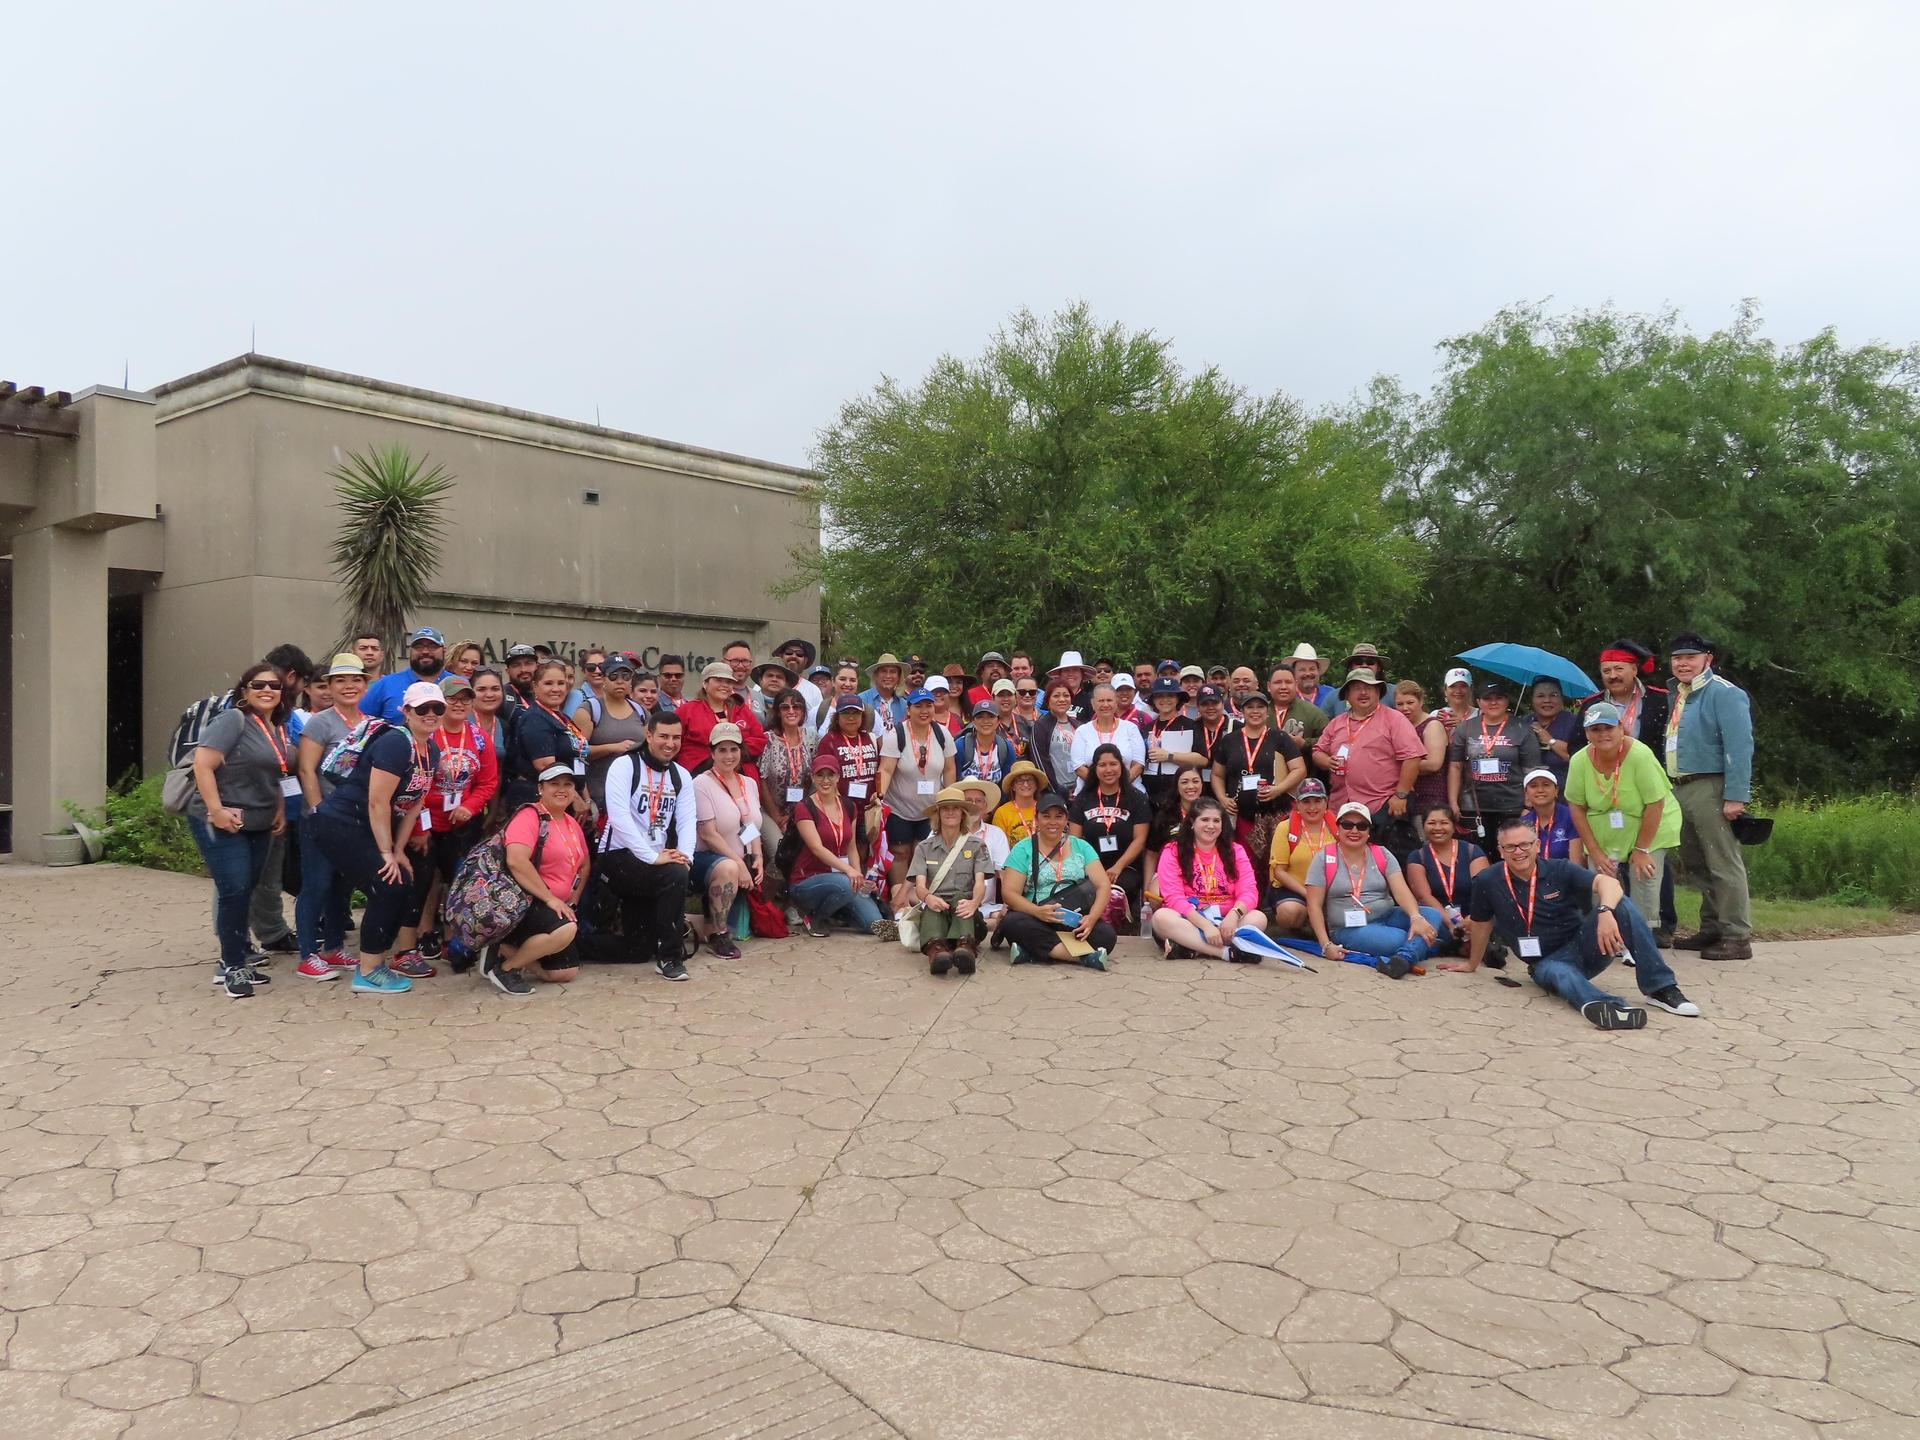 Group photo in front of the parks building